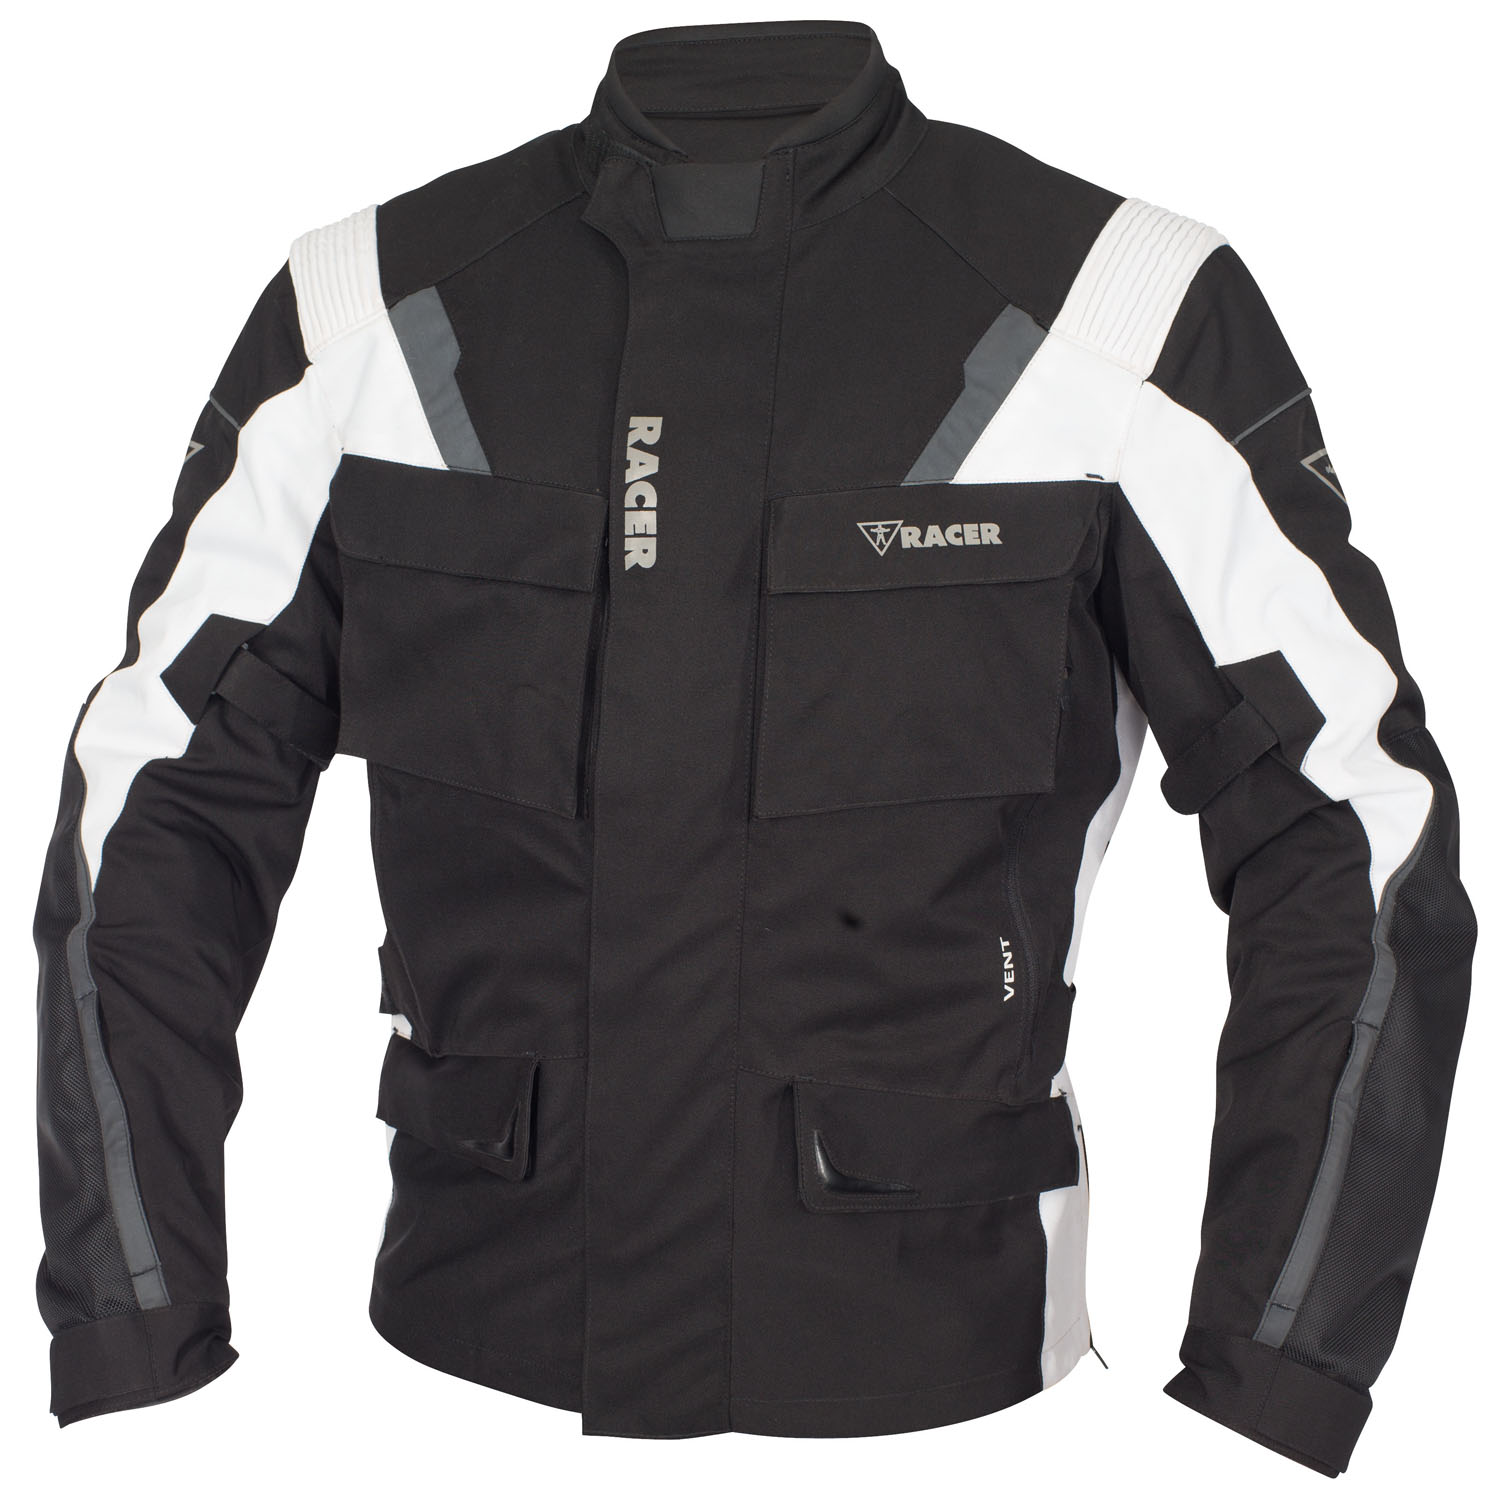 racer siena stretch herren motorradjacke touring textil. Black Bedroom Furniture Sets. Home Design Ideas